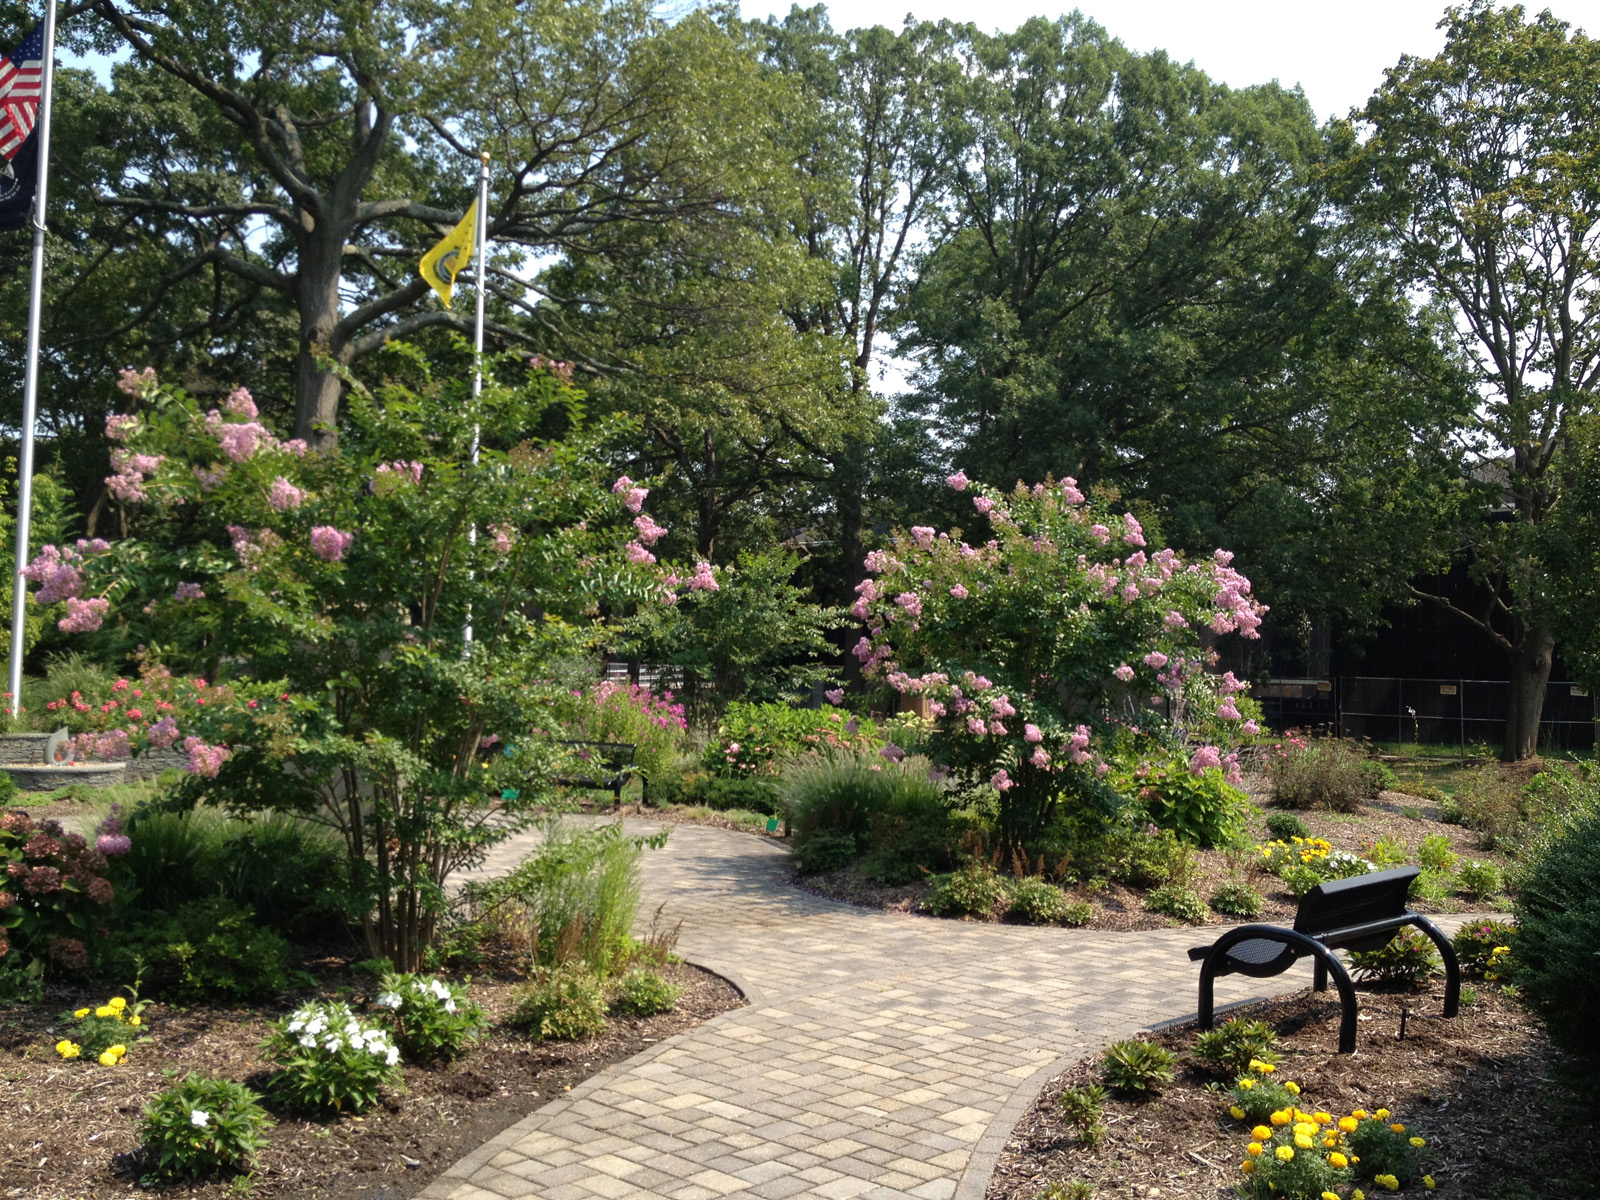 Professional landscape design with memorial garden in Long Island, NY